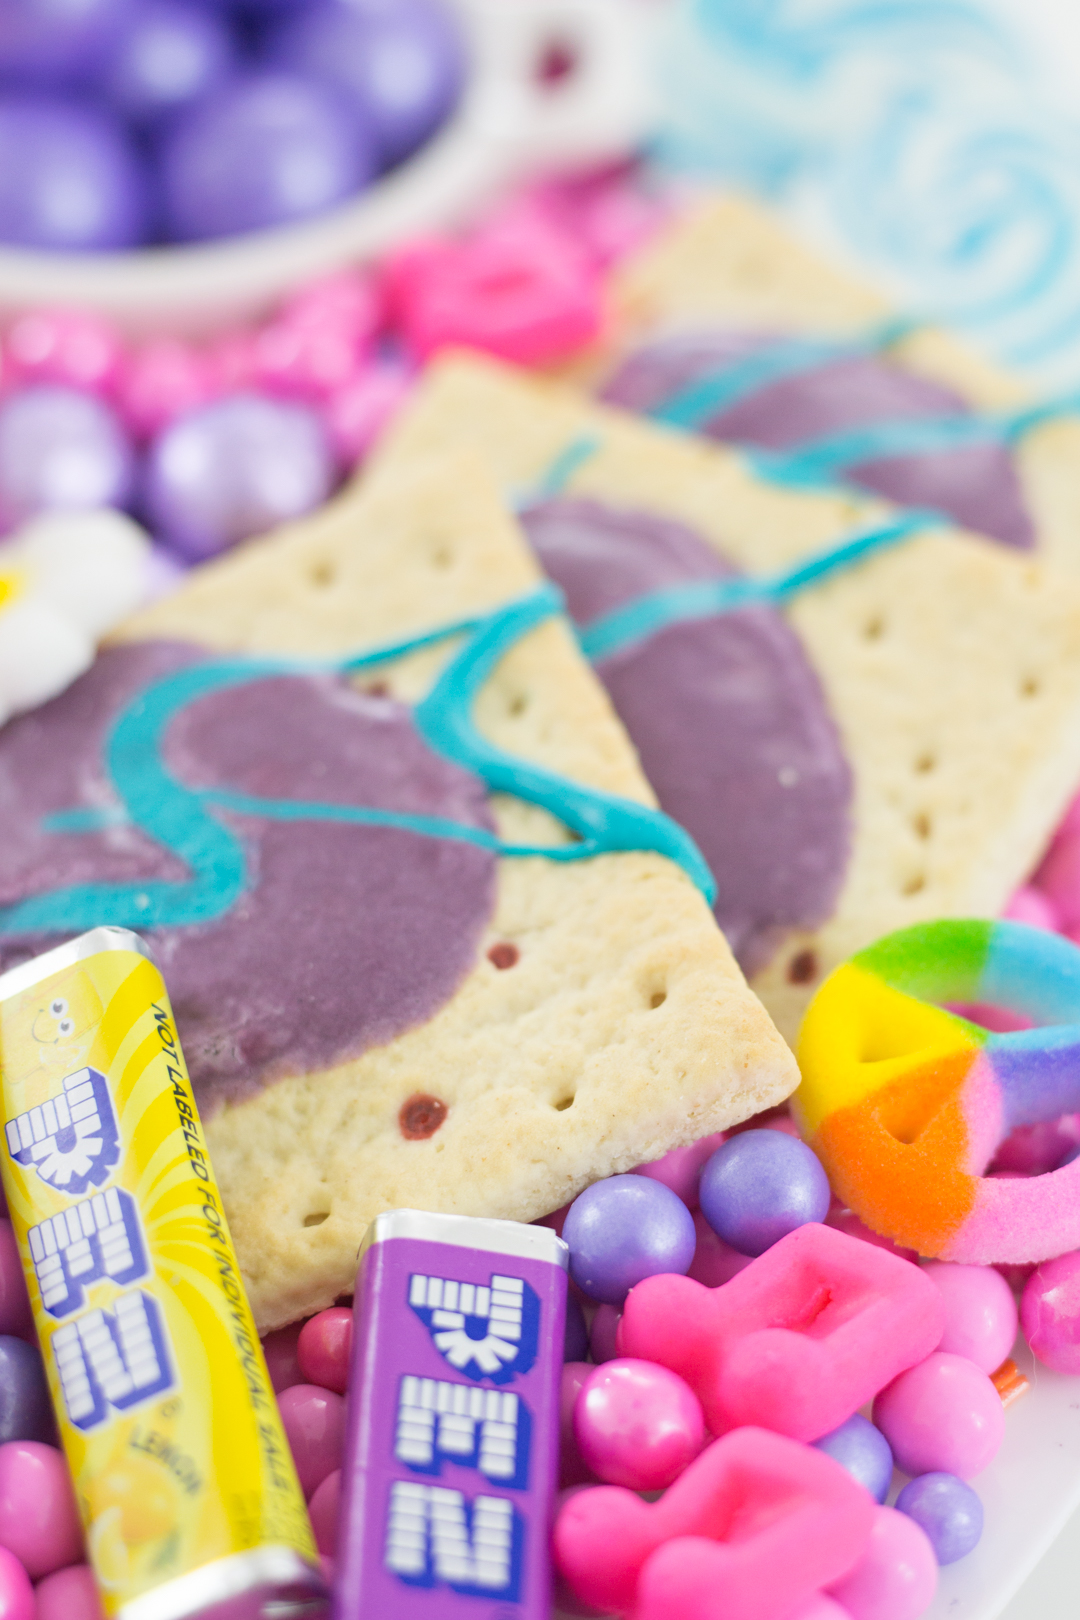 colorful pop tarts, peace sign candy, pez candy